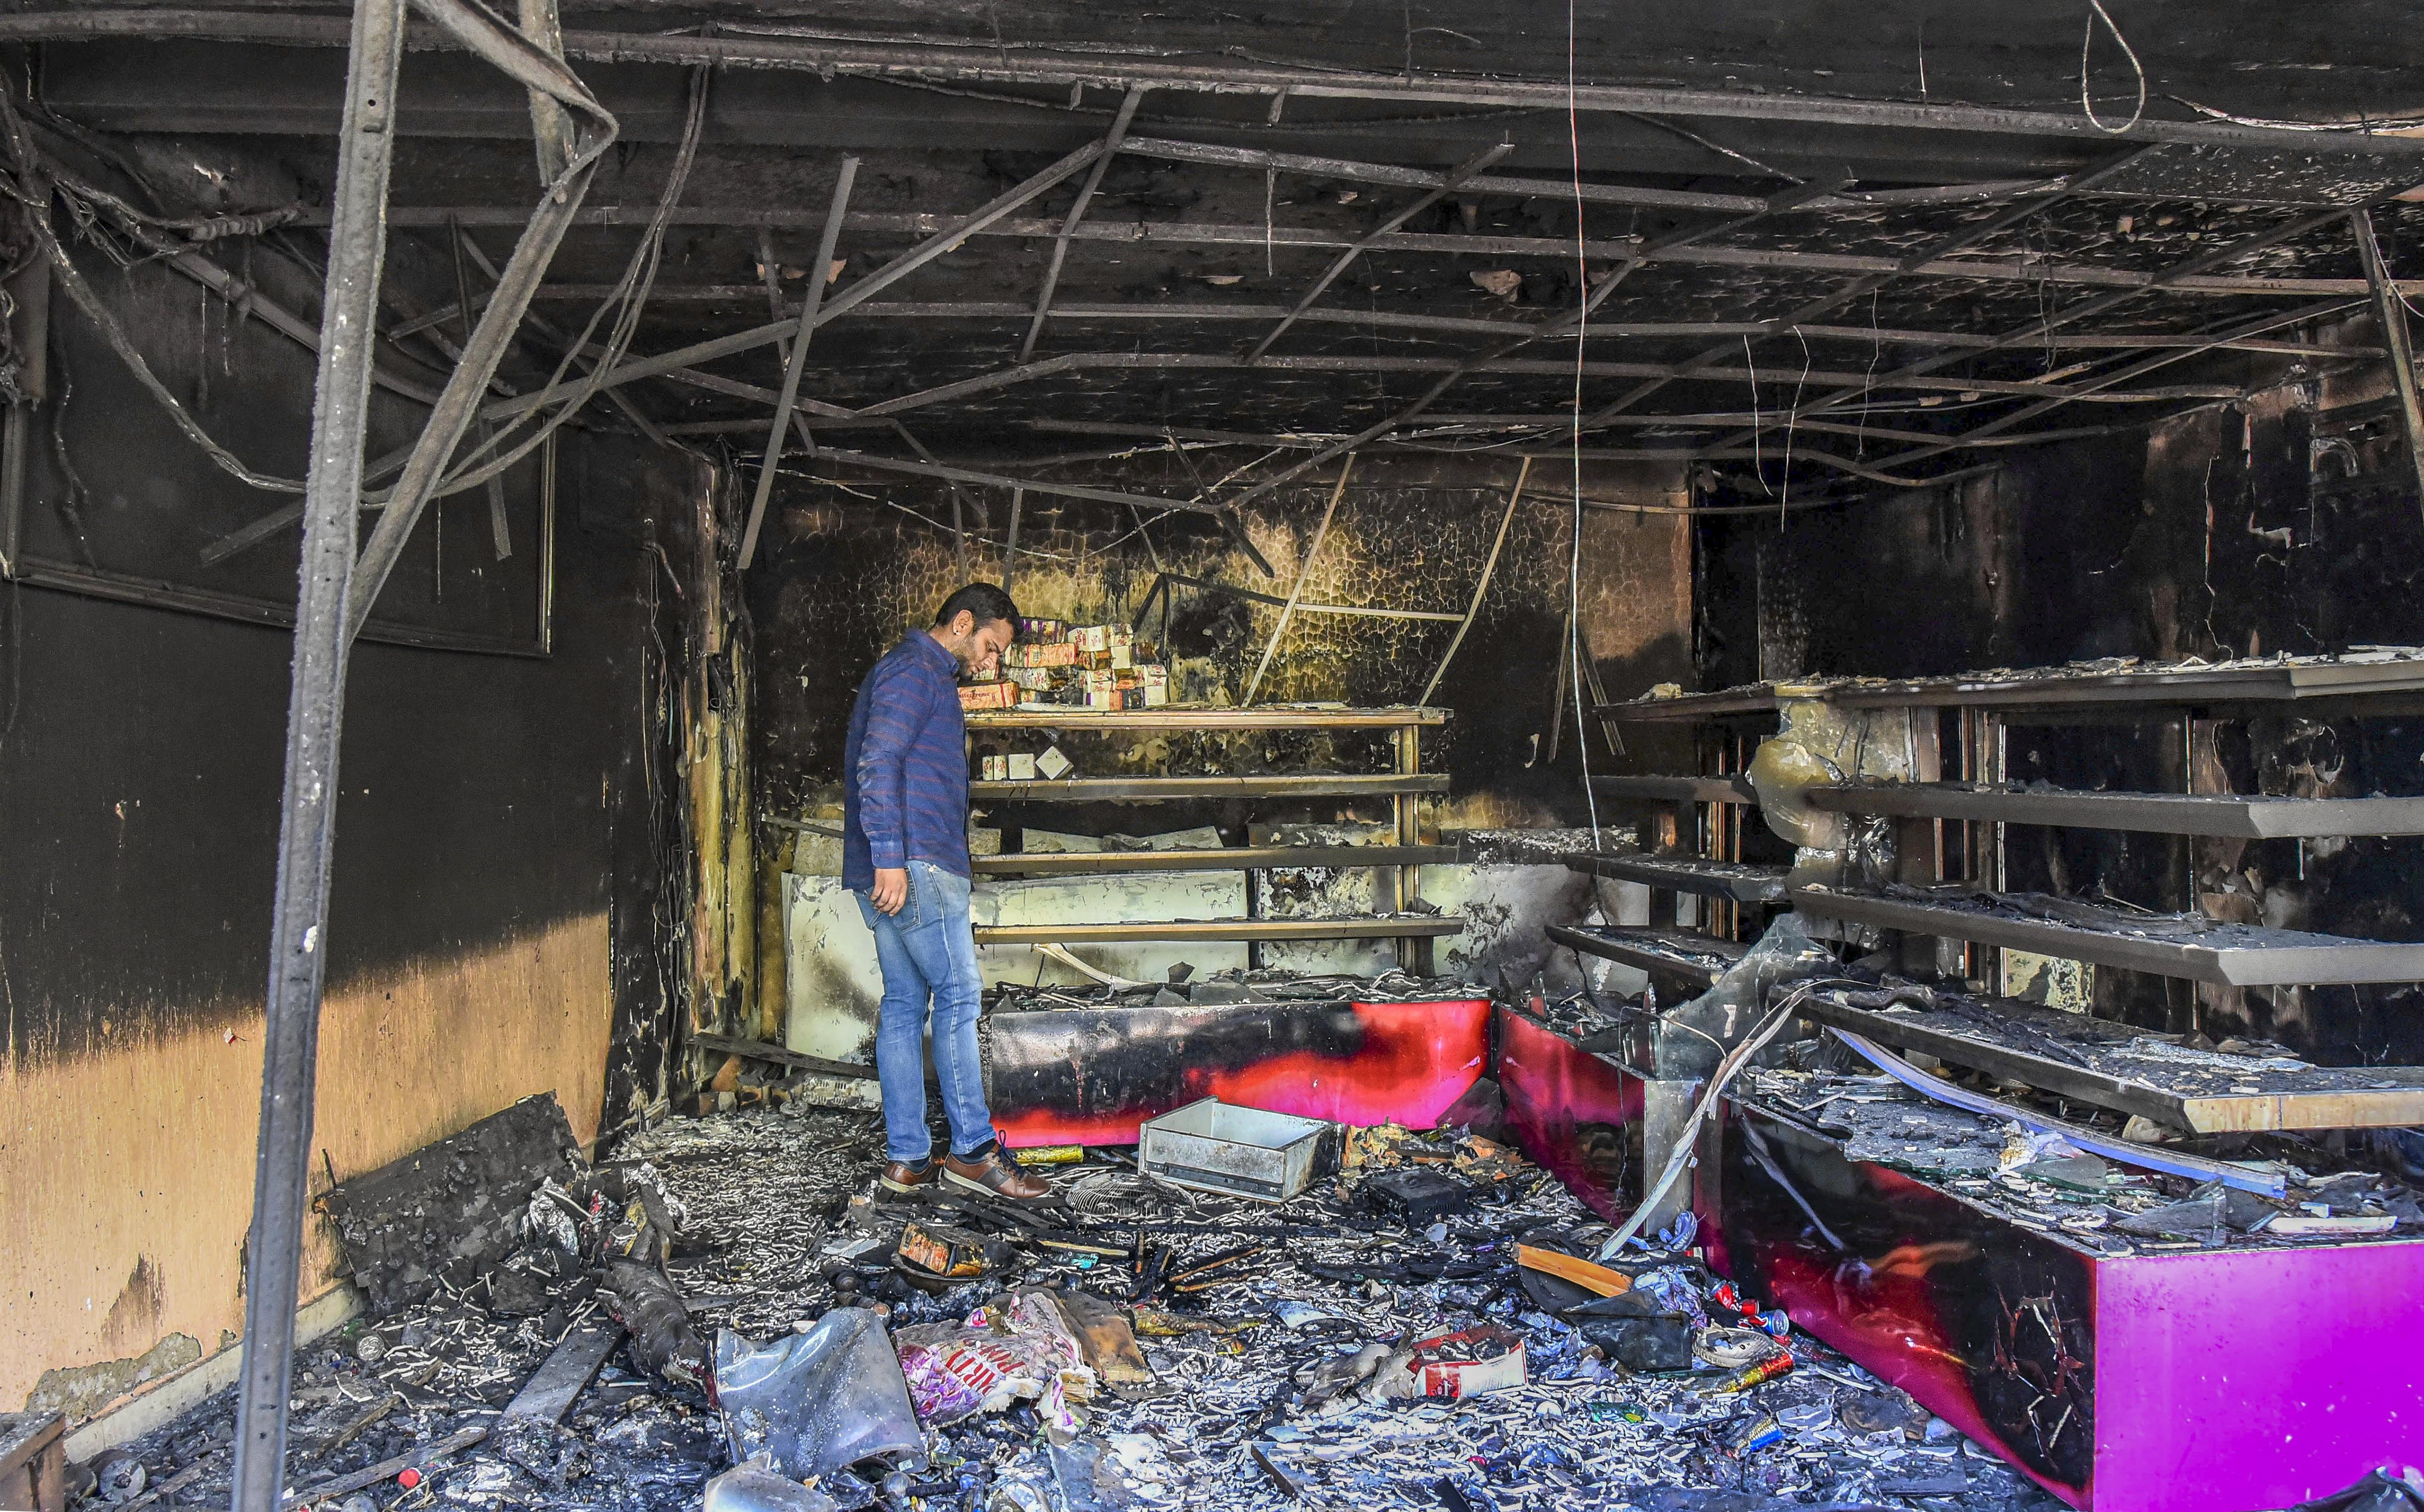 A man stands in a burnt shop which was set ablaze by rioters, in the violence-affected area of northeast Delhi, Sunday, March 1, 2020